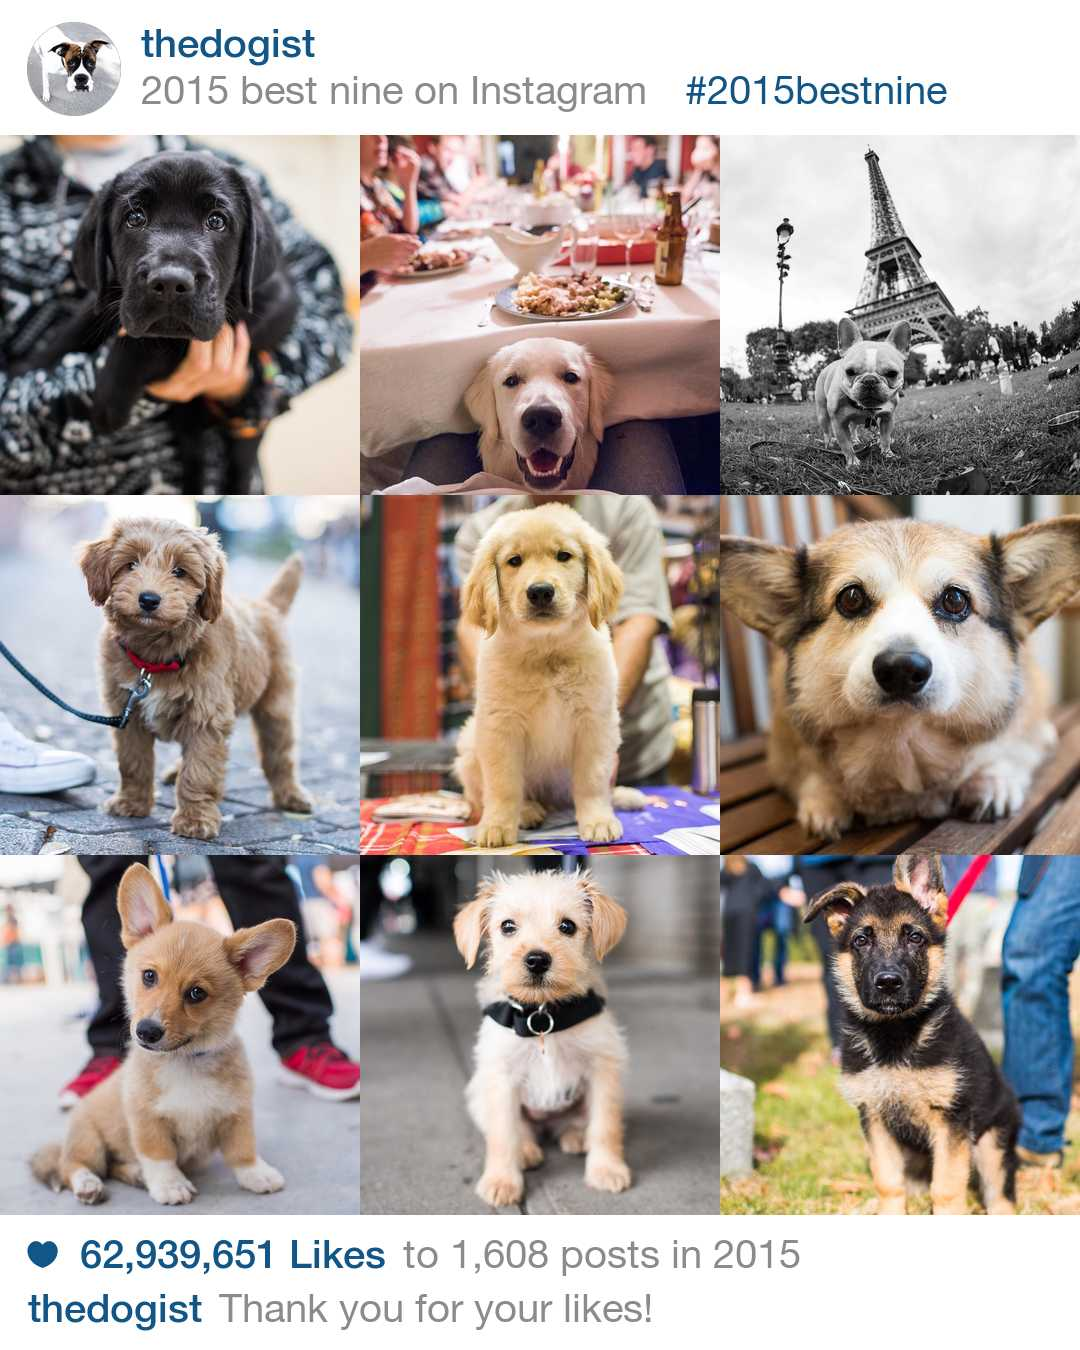 thedogist_full